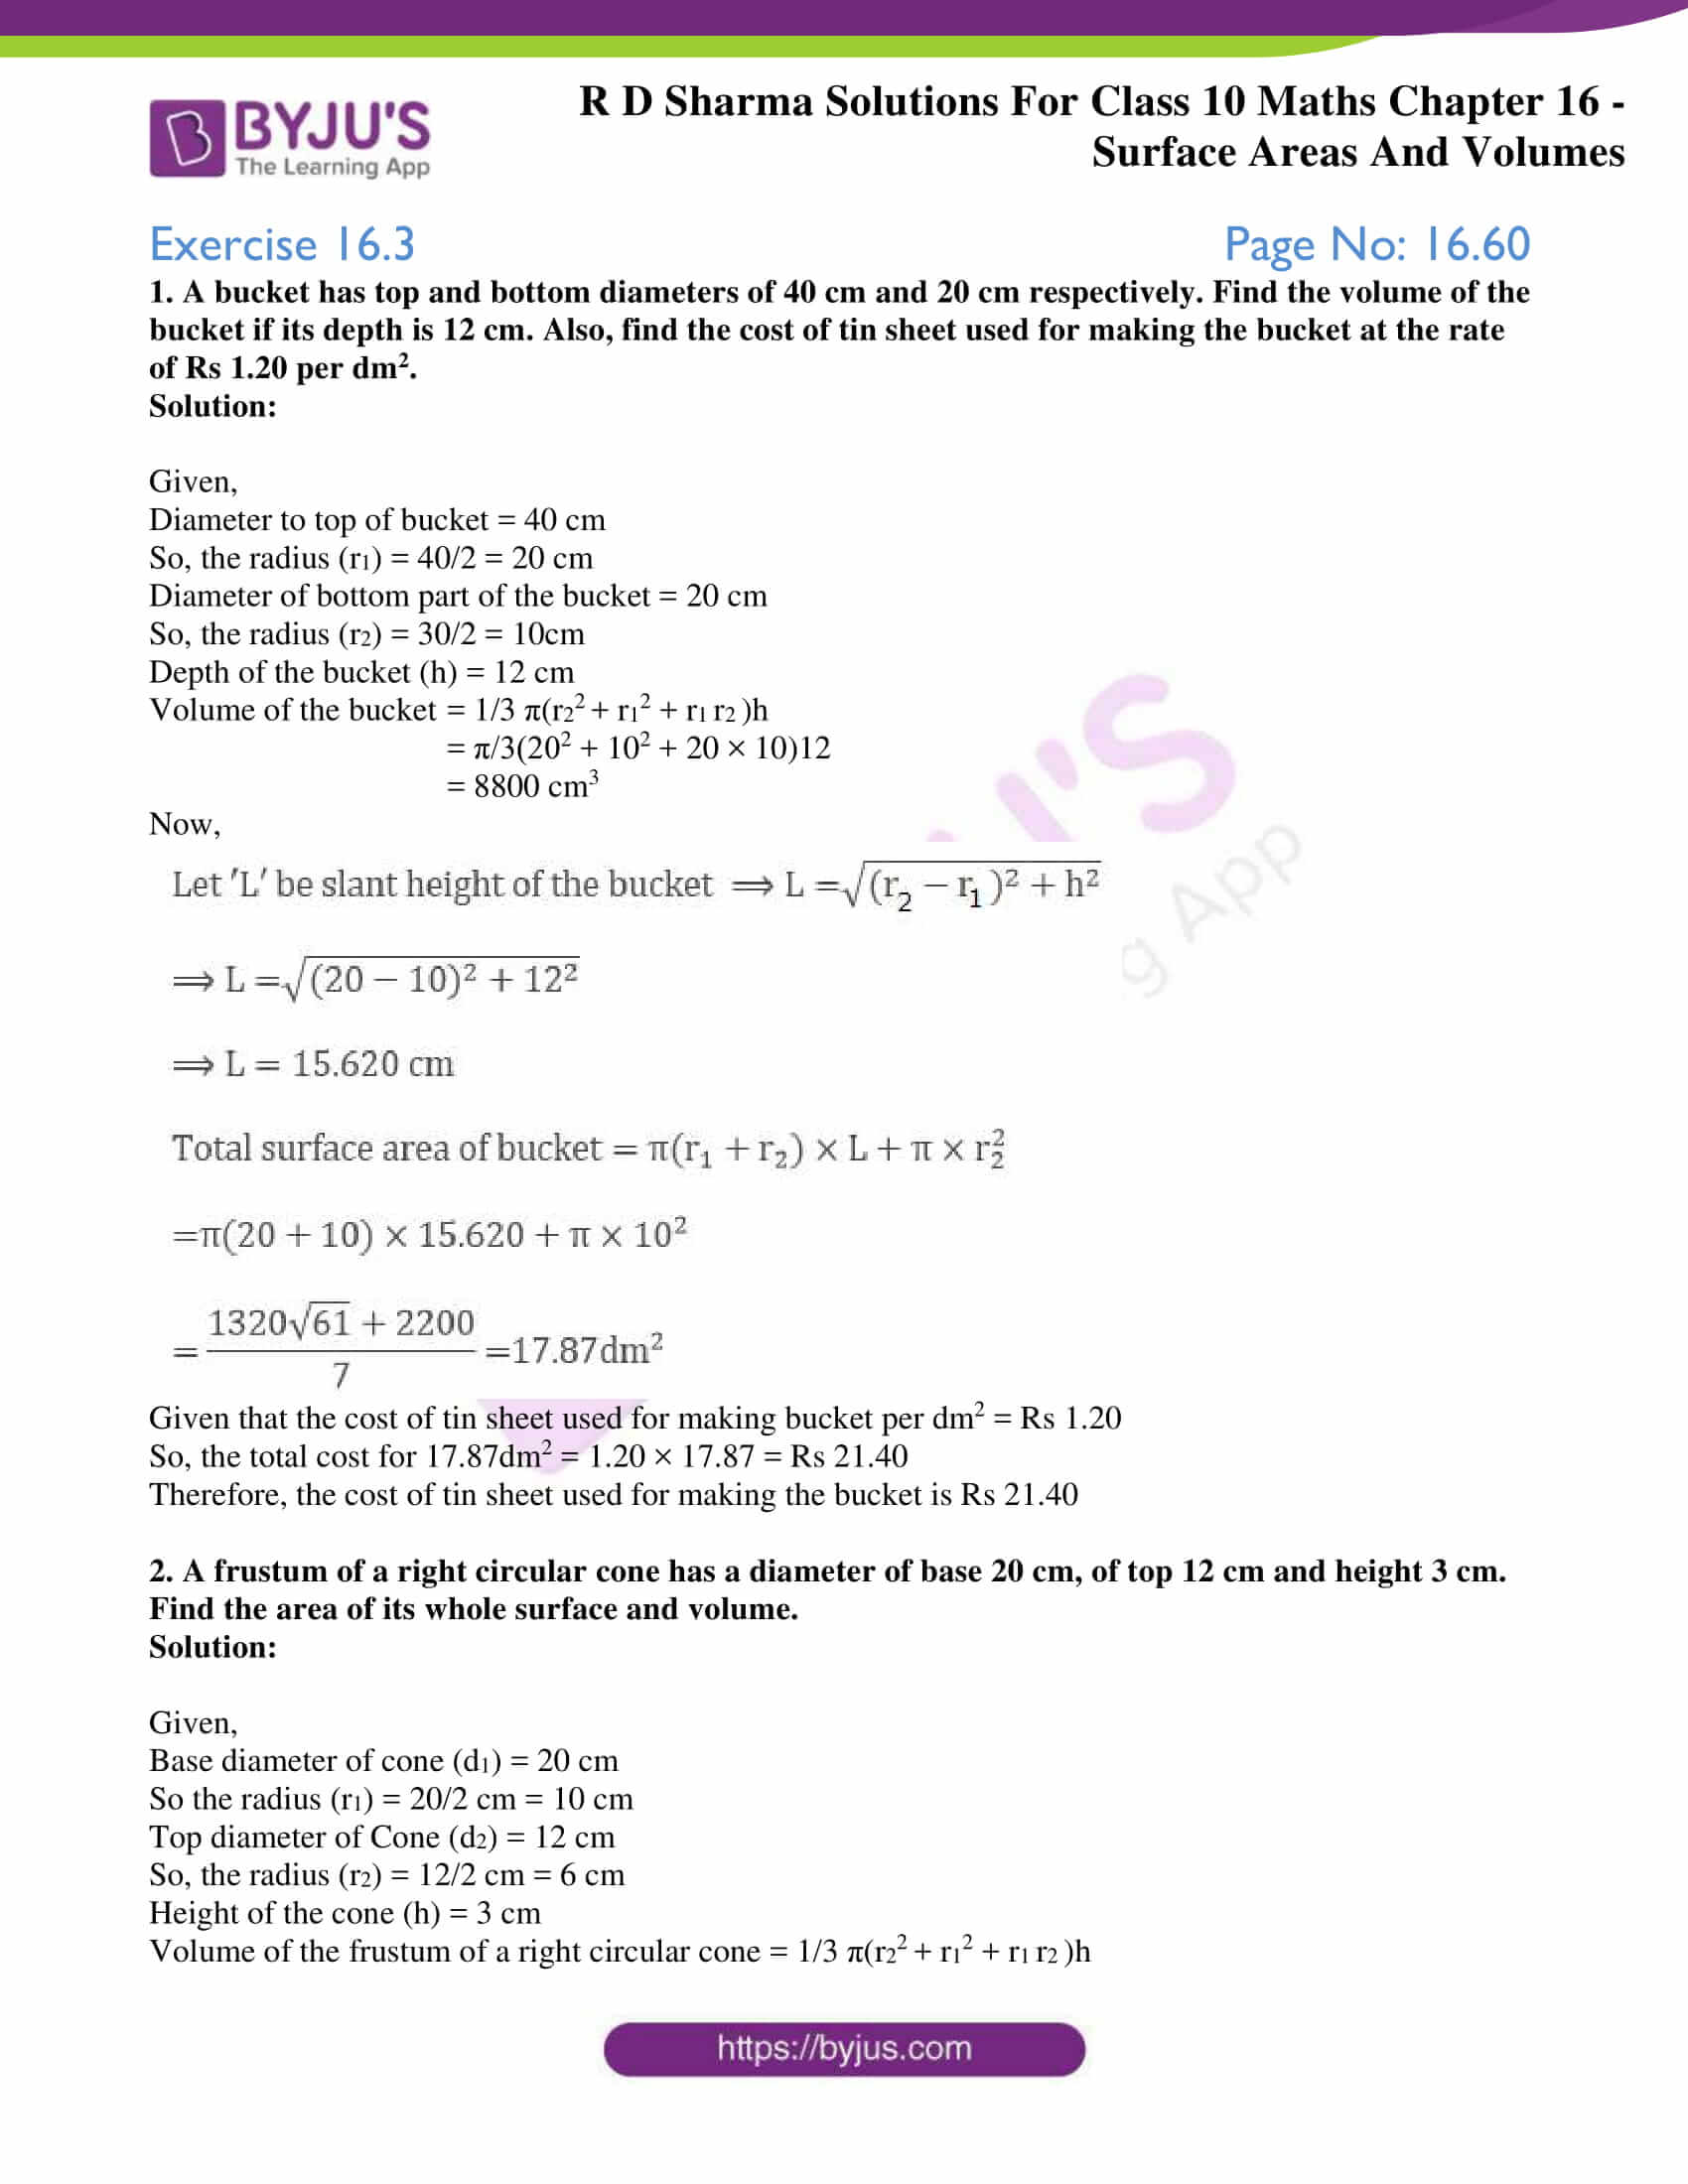 rd sharma solutions class 10 chapter 16 exercise 3